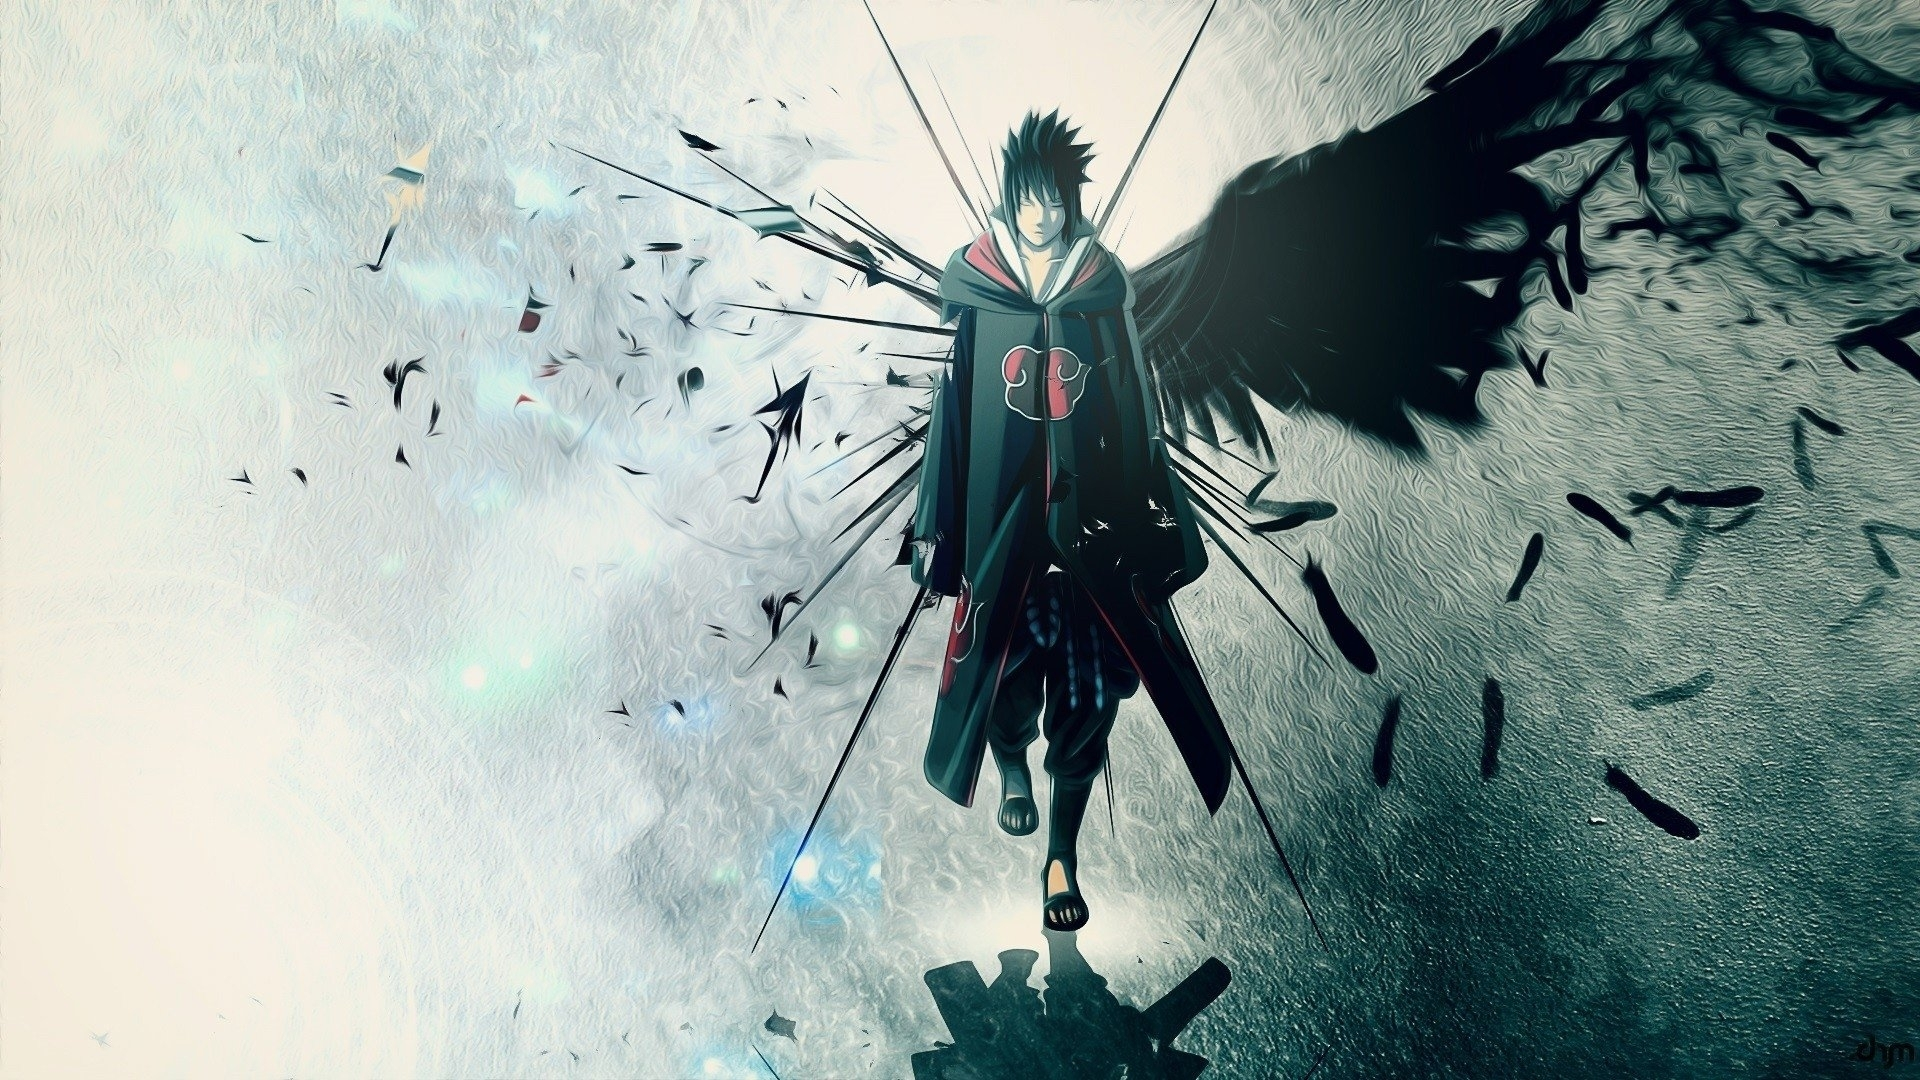 614 sasuke uchiha hd wallpapers | background images - wallpaper abyss